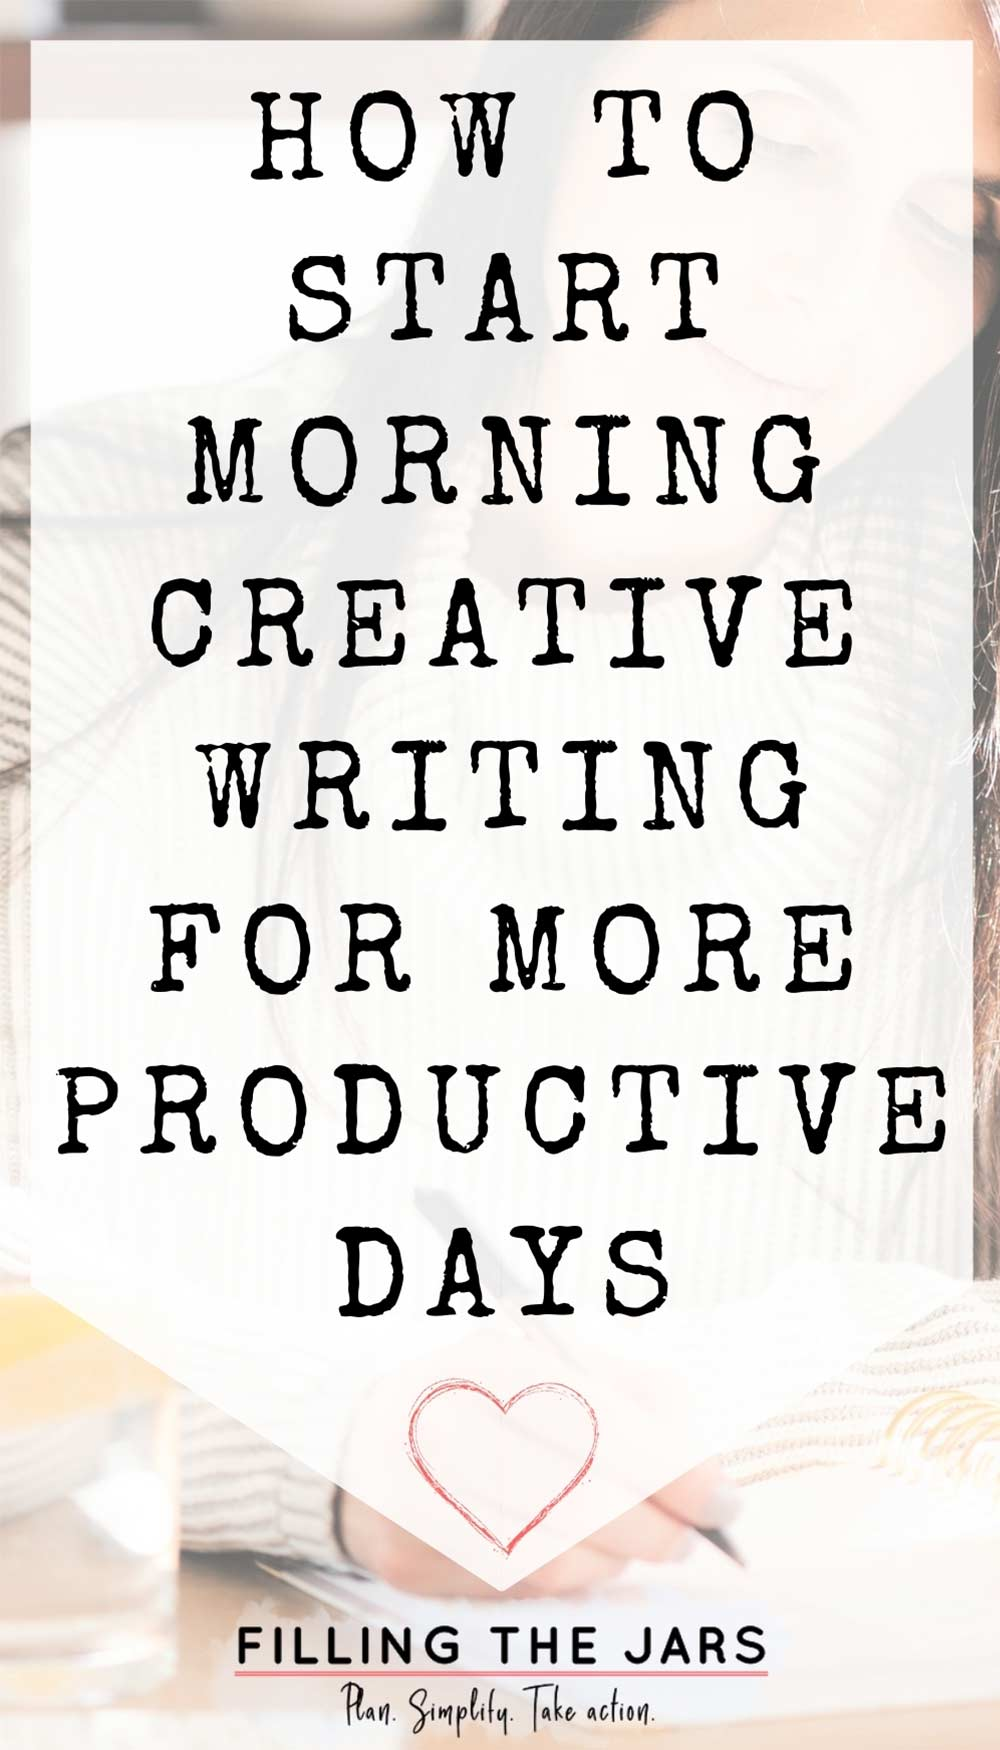 Text how to start morning creative writing for a productive day on white background over image of woman in white sweater with long dark hair doing morning creative writing.